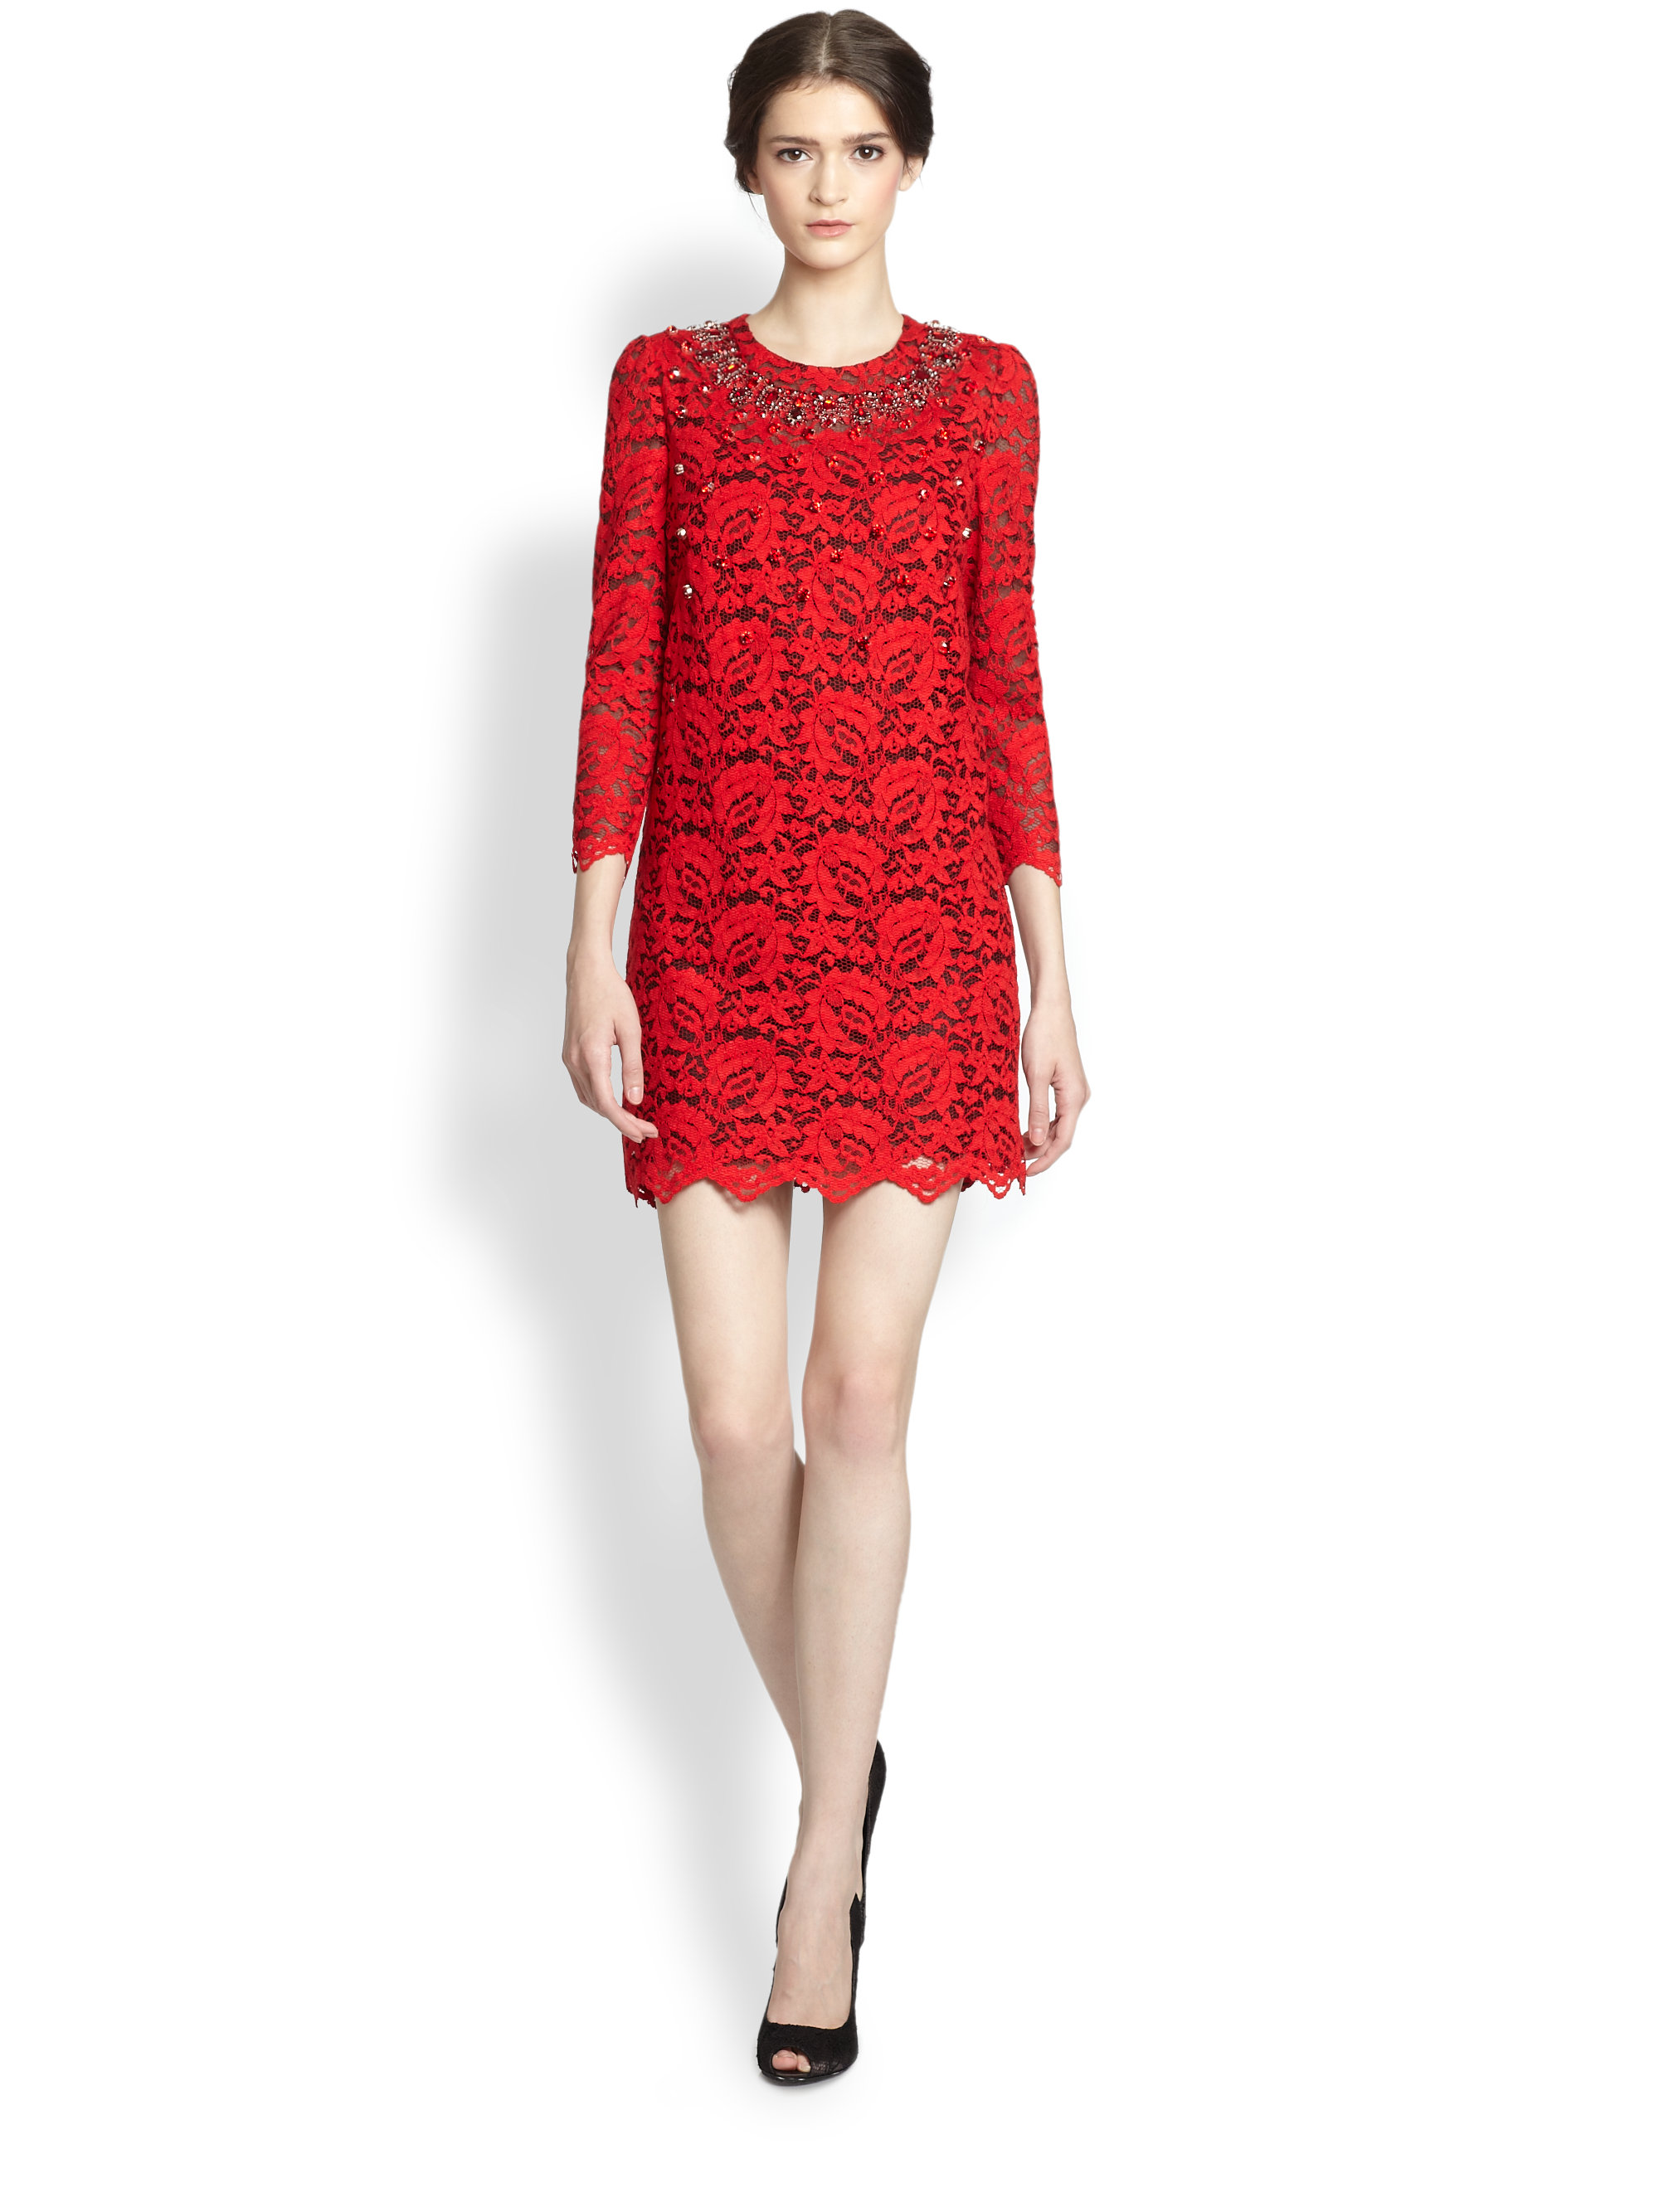 Dolce & gabbana Embellished Lace Dress in Red | Lyst